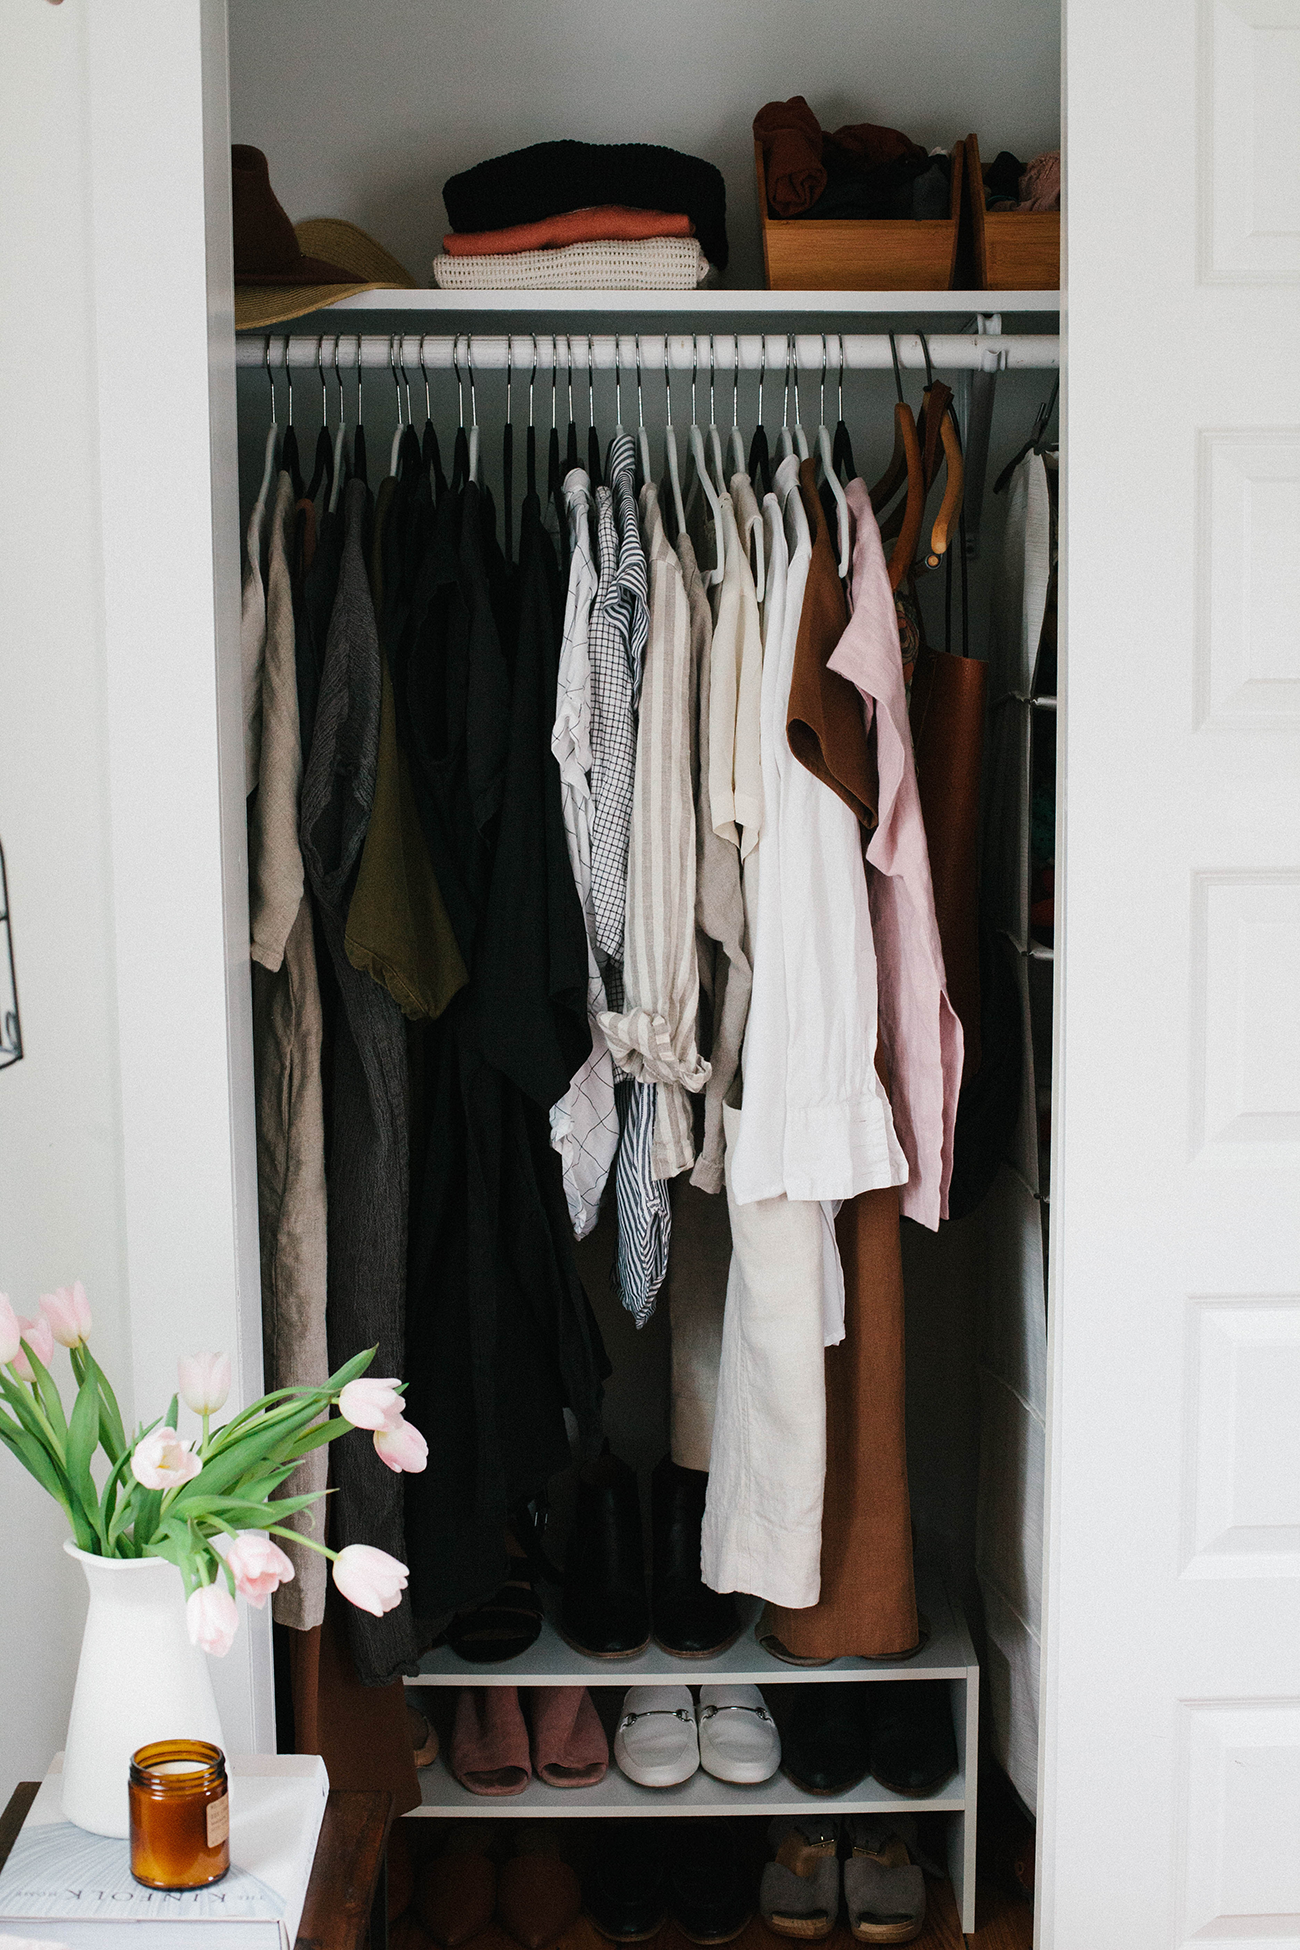 Style What S In My Closet Currently And A Spring 10x10 Challenge A Daily Something Minimalist Closet Organization Wardrobe Closet Organizer Minimalist Closet